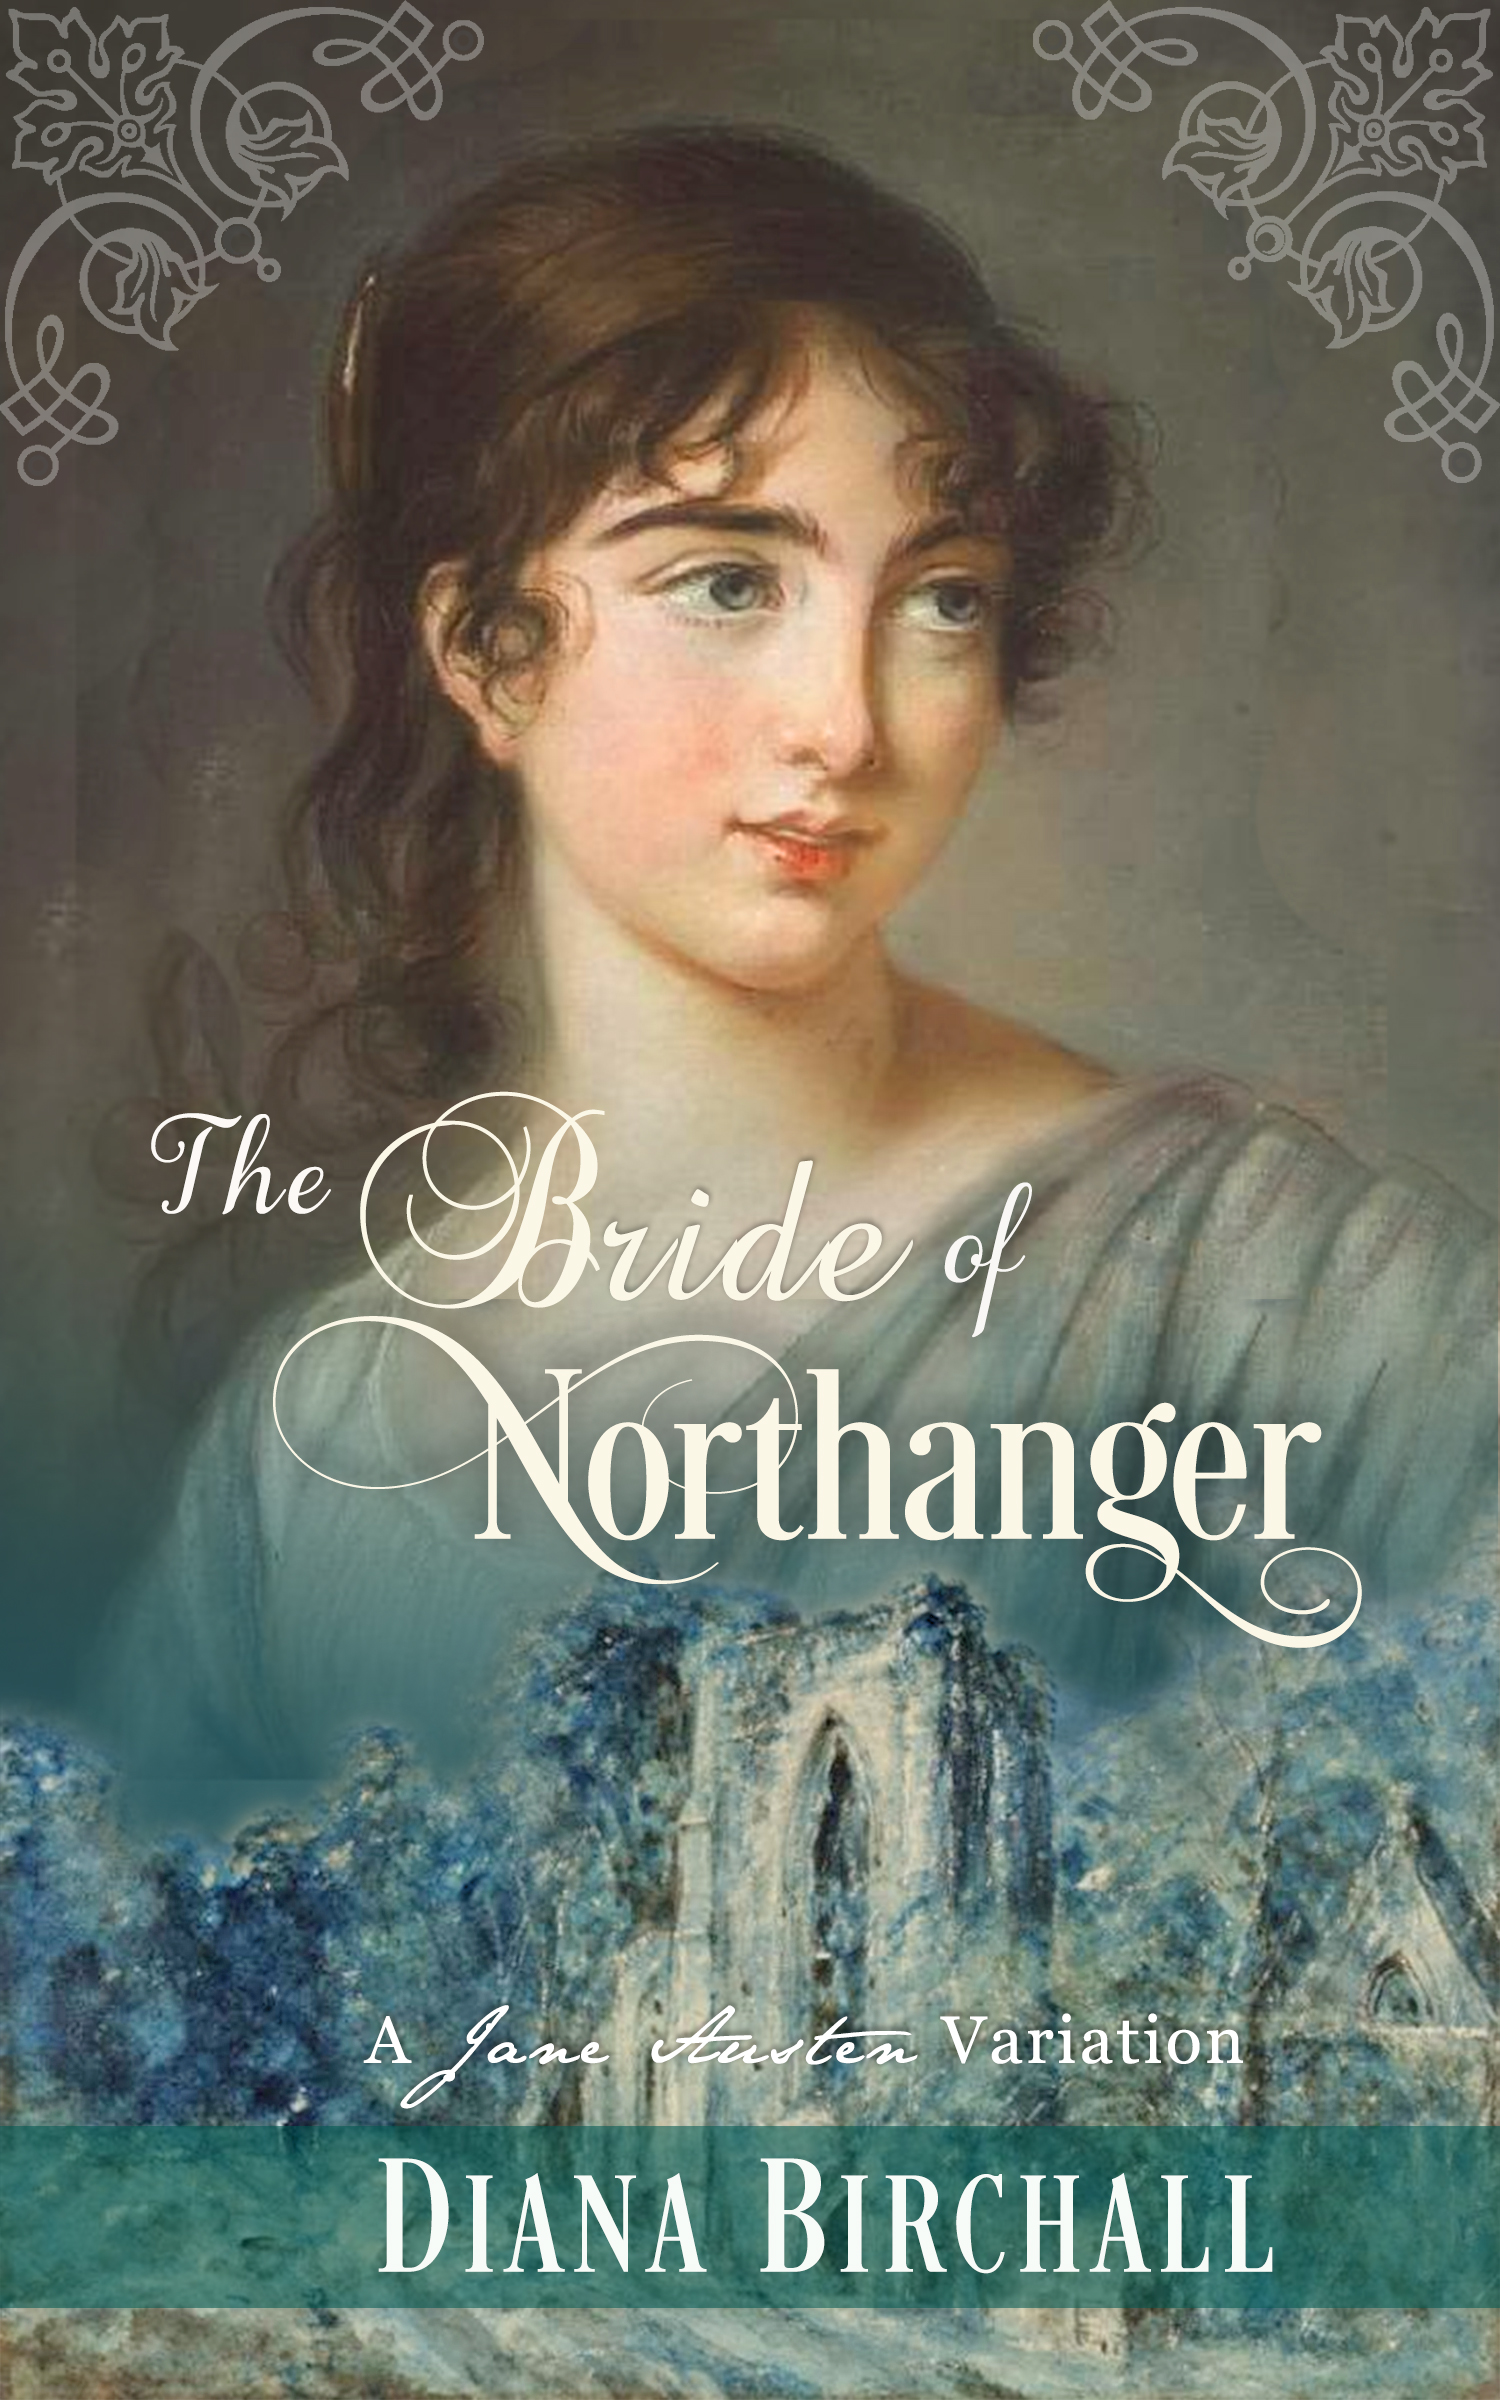 The Bride of Northanger, by Diana Birchall (2019)